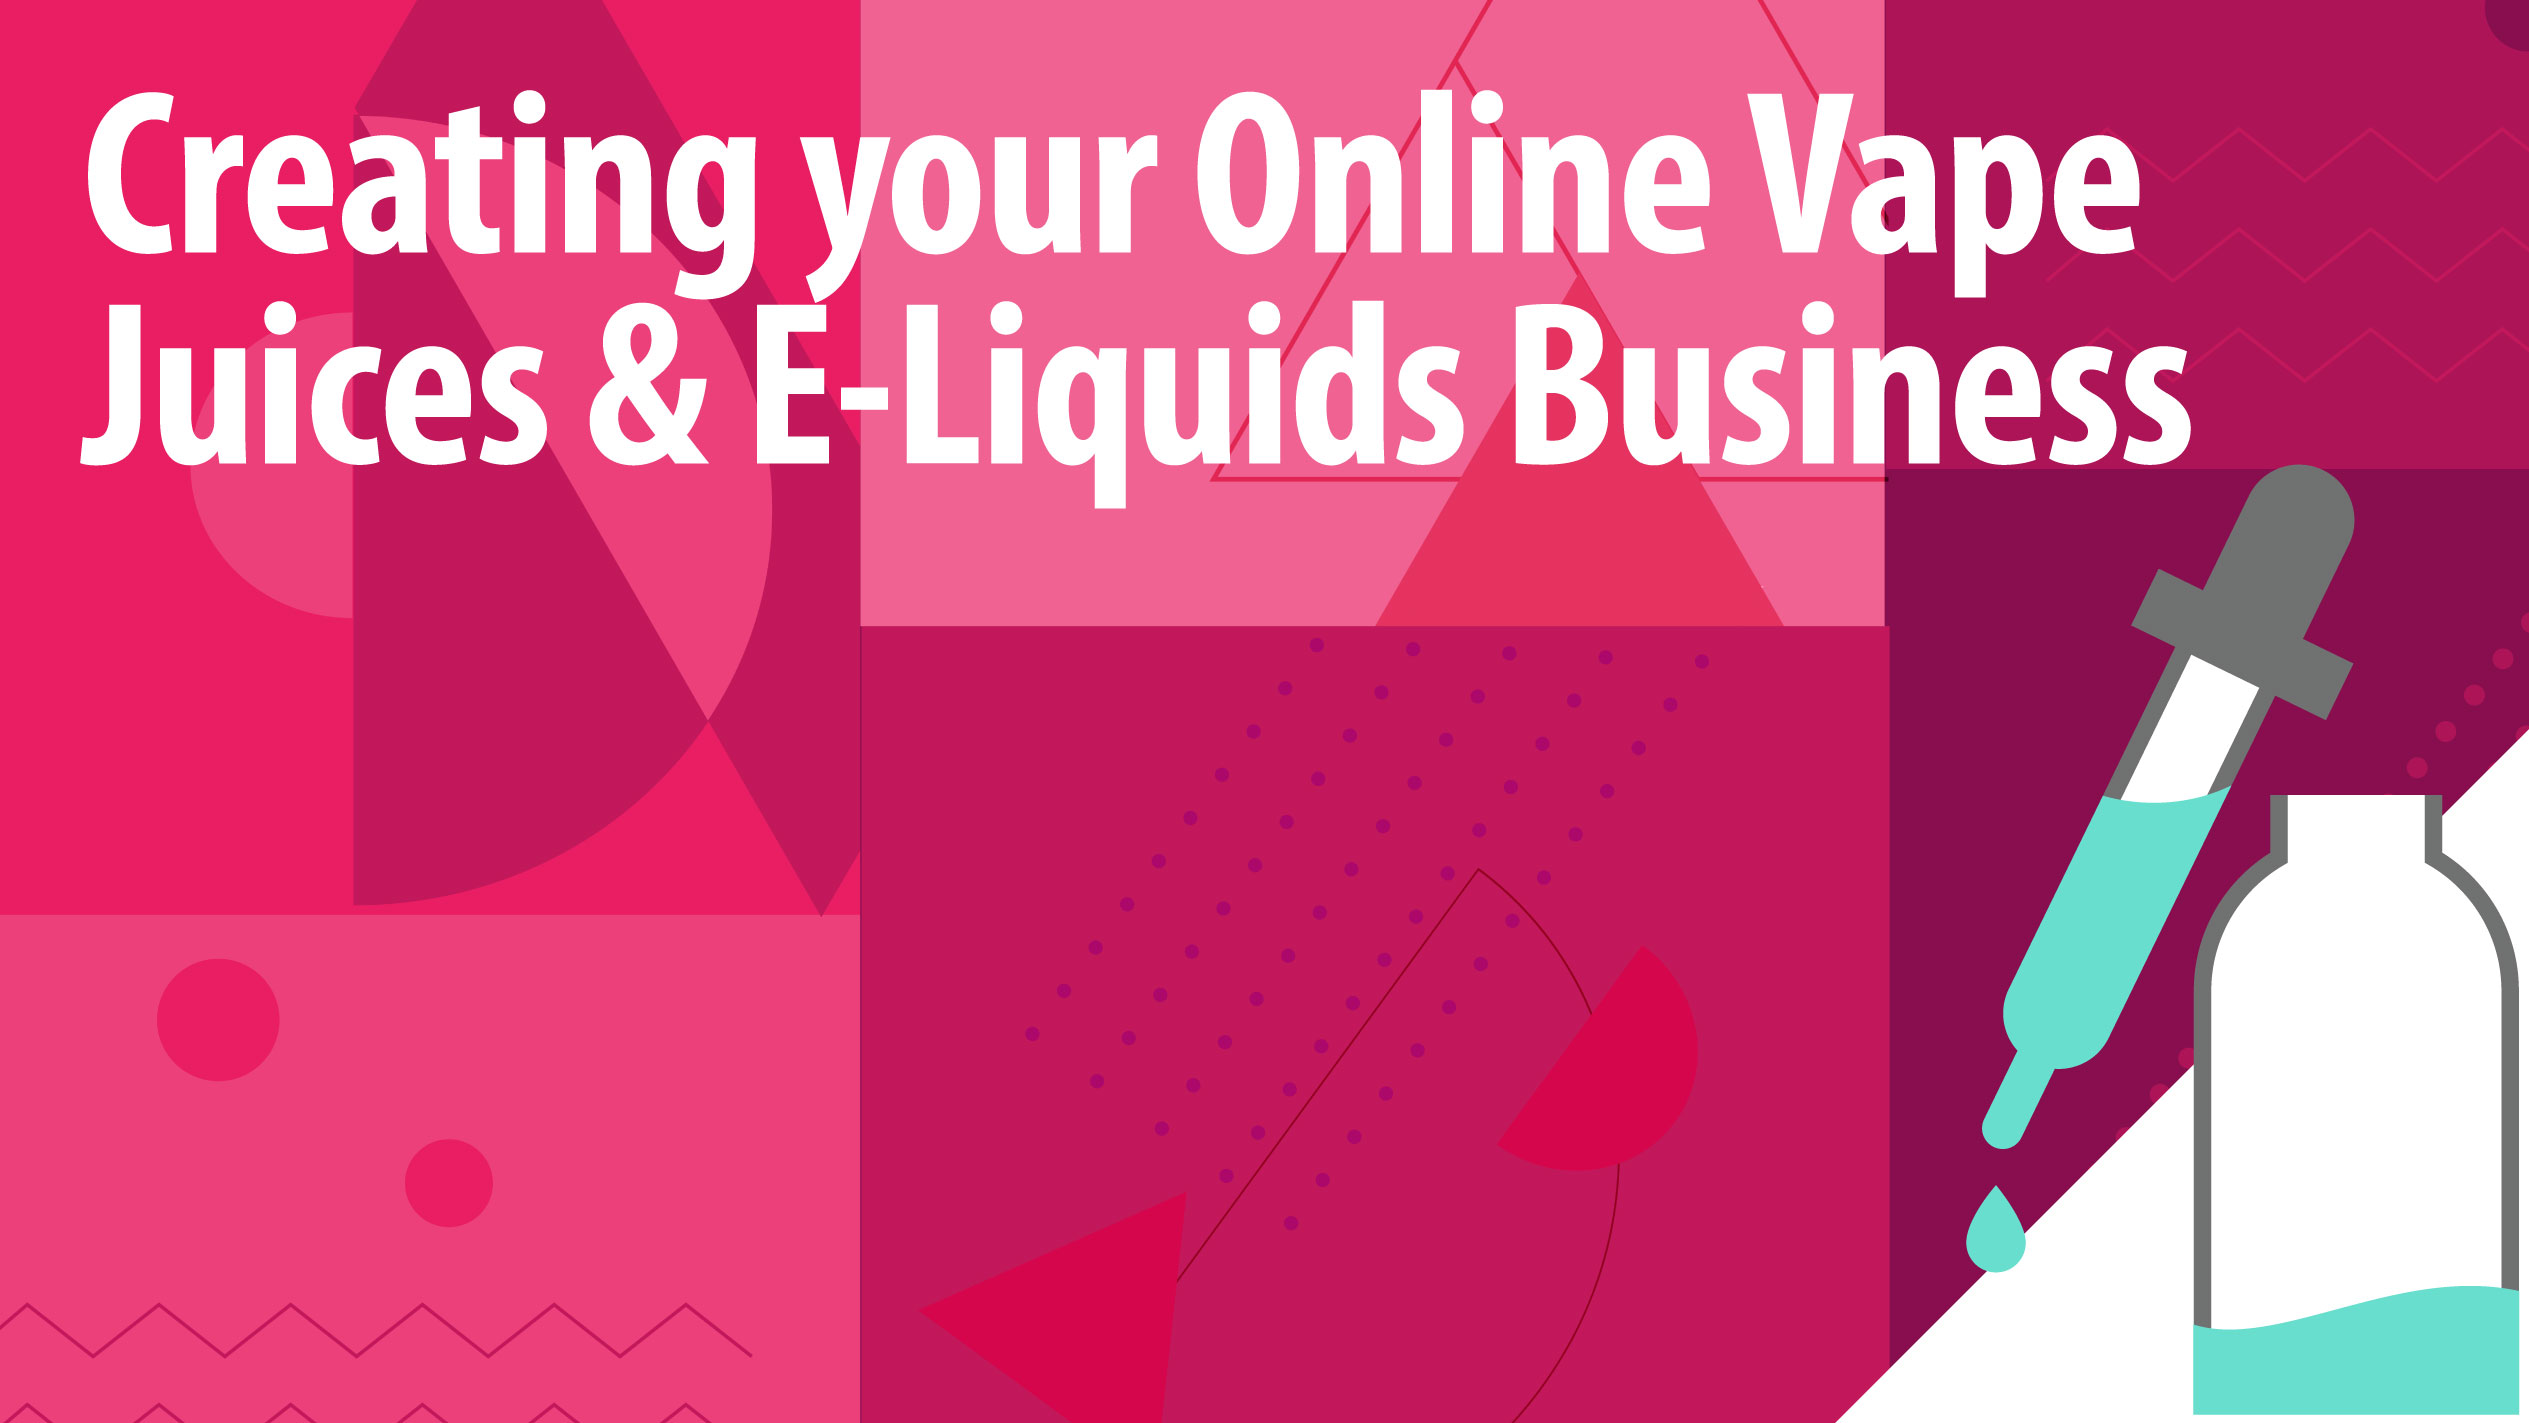 Creating your Online Vape Juices & E-Liquids Business